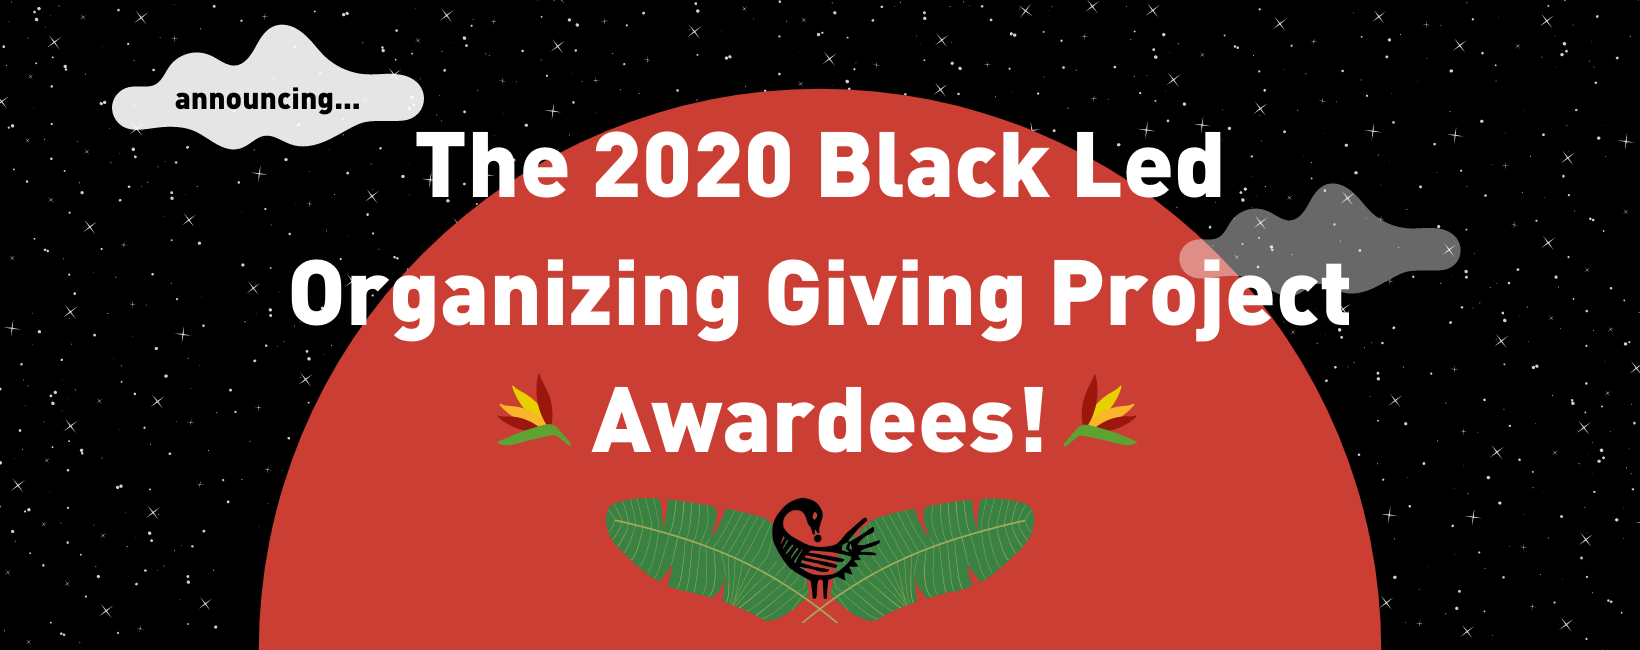 Rectangular image with a background of white stars on a black sky. In the center is a large red moon with small white clouds floating in front of it and palm leaves with a sankofa bird at their center framing the bottom. Text reads announcing...the 2020 Black Led Organizing Giving Project Awardees